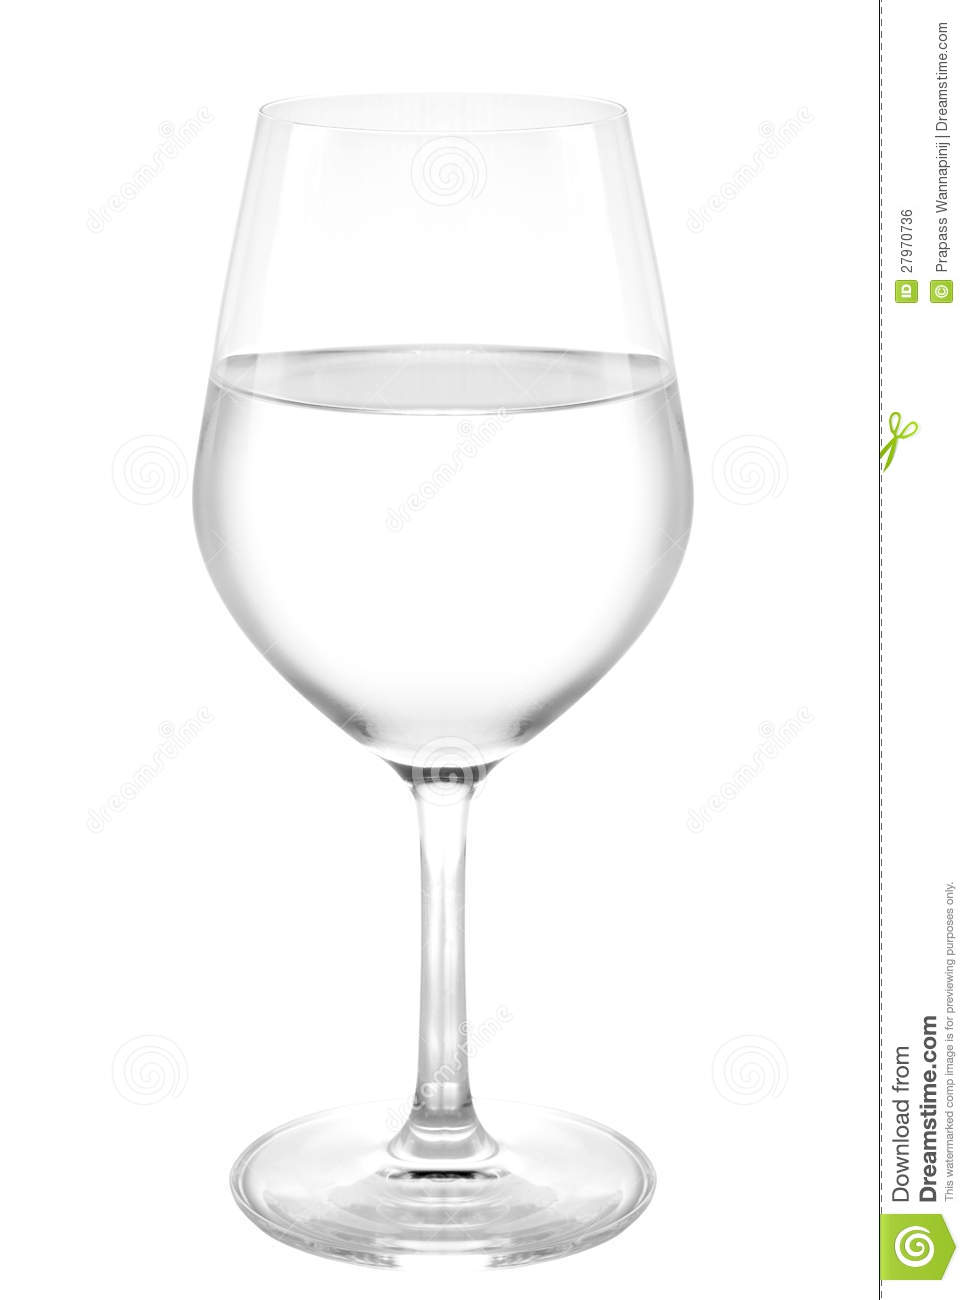 water-bottle-clipart-black-and-white